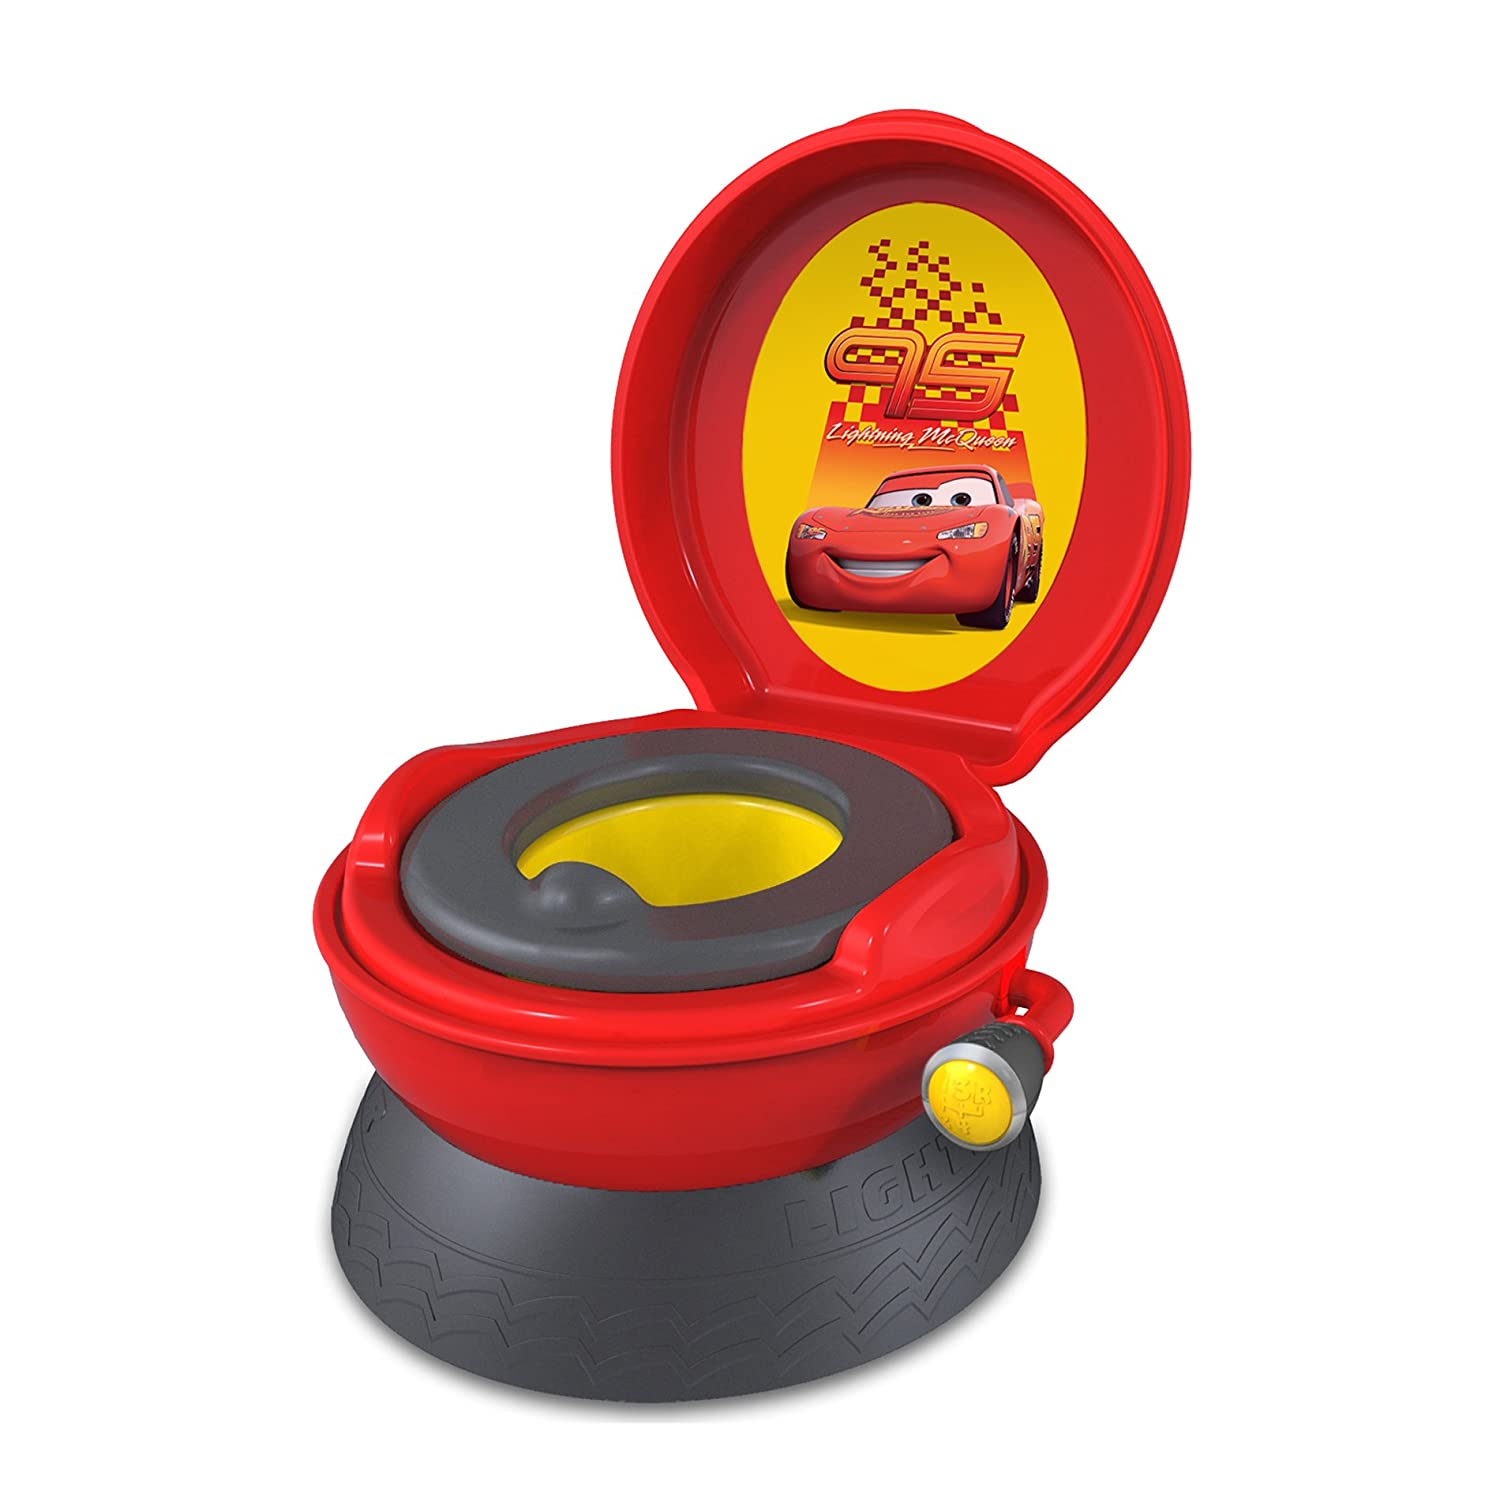 Amazon.com : The First Years Disney Pixar Cars Rev And Go Potty System  (Discontinued By Manufacturer) : Toilet Training Potties : Baby